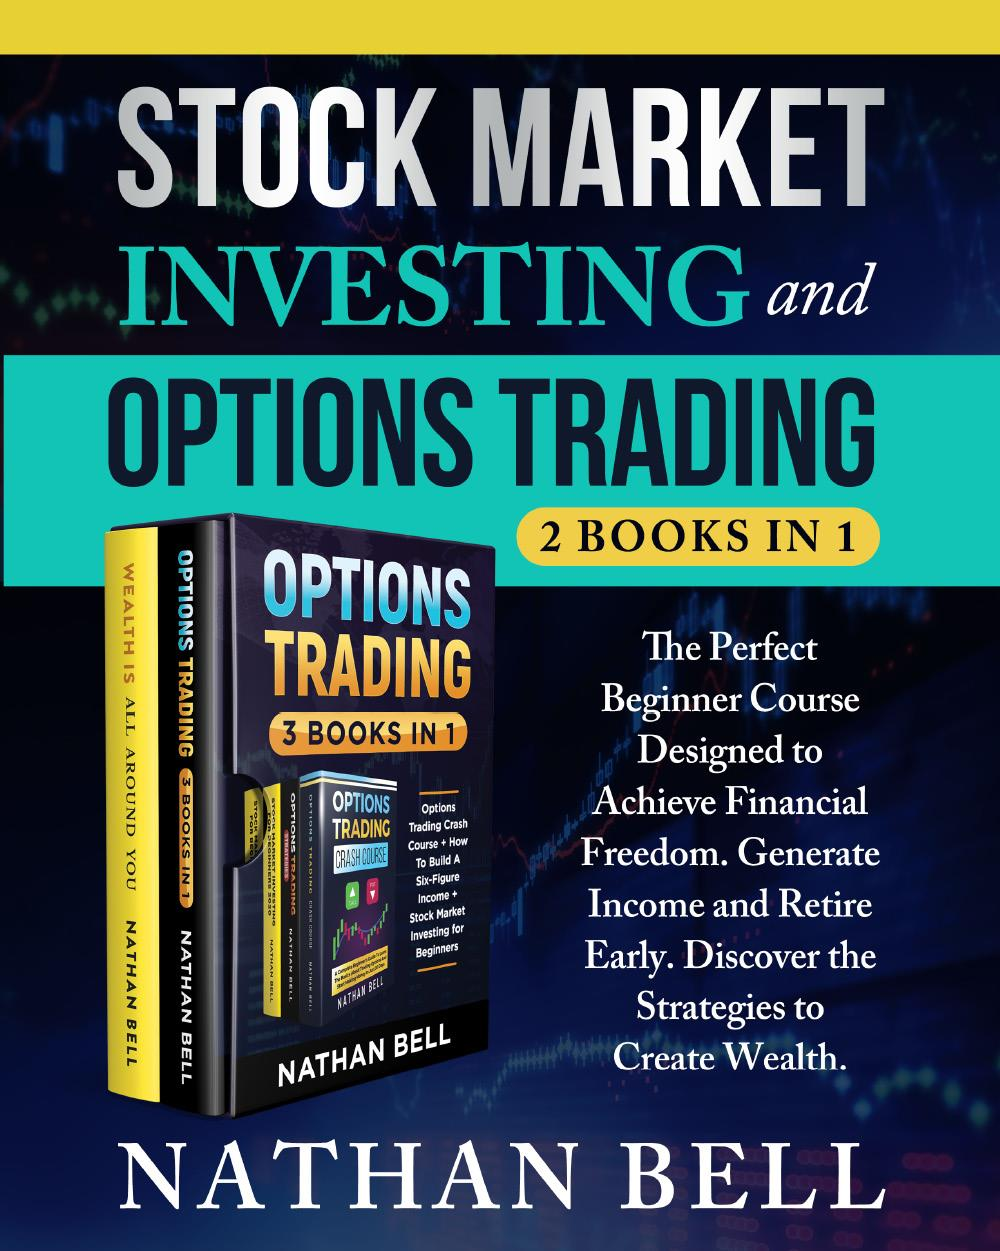 Stock Market Investing and Options Trading (2 books in 1)